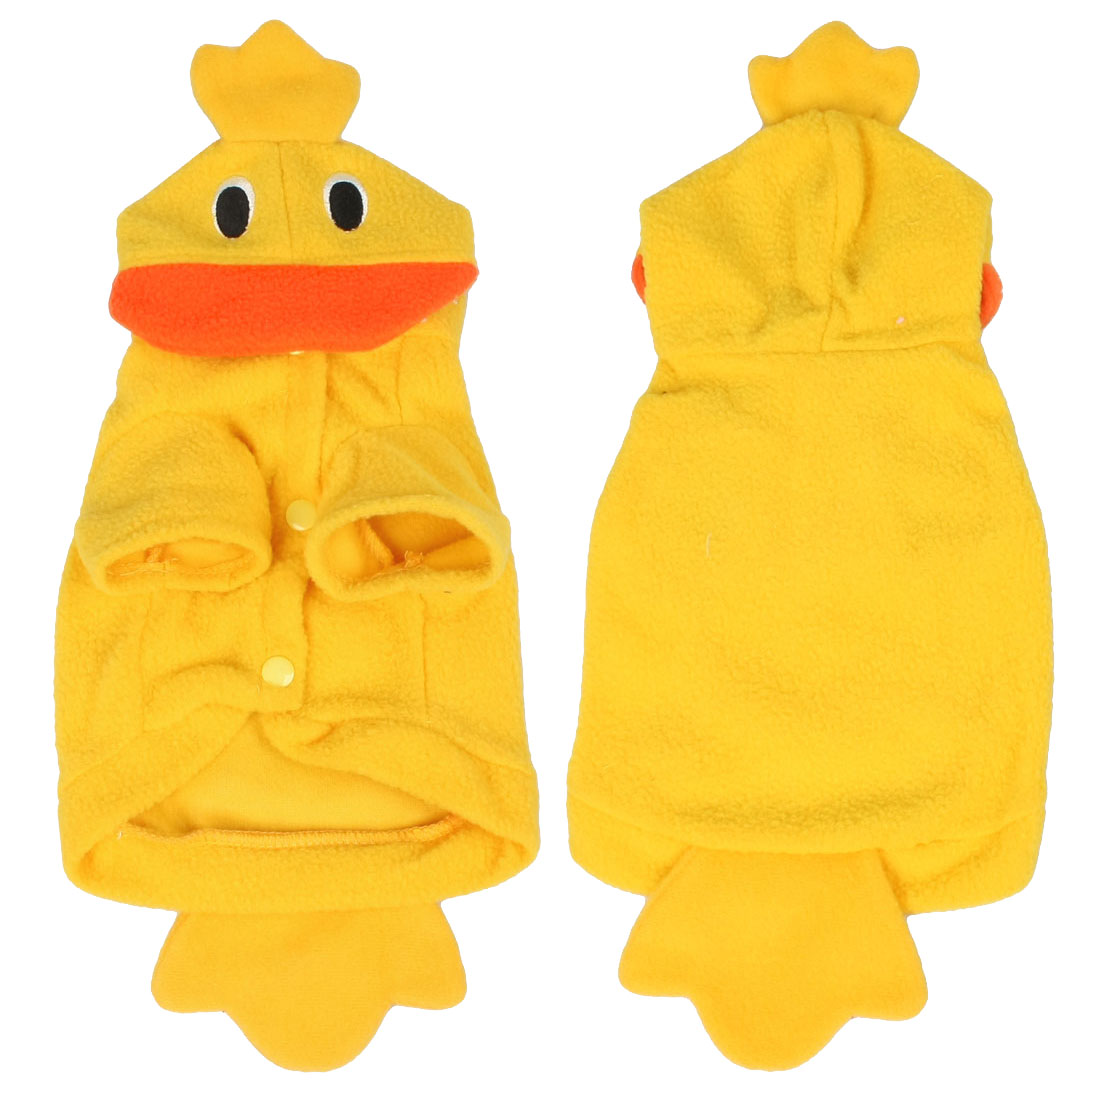 Doggy Dog Halloween Costume Duck Style Fleece Clothes Coat Yellow Size XS